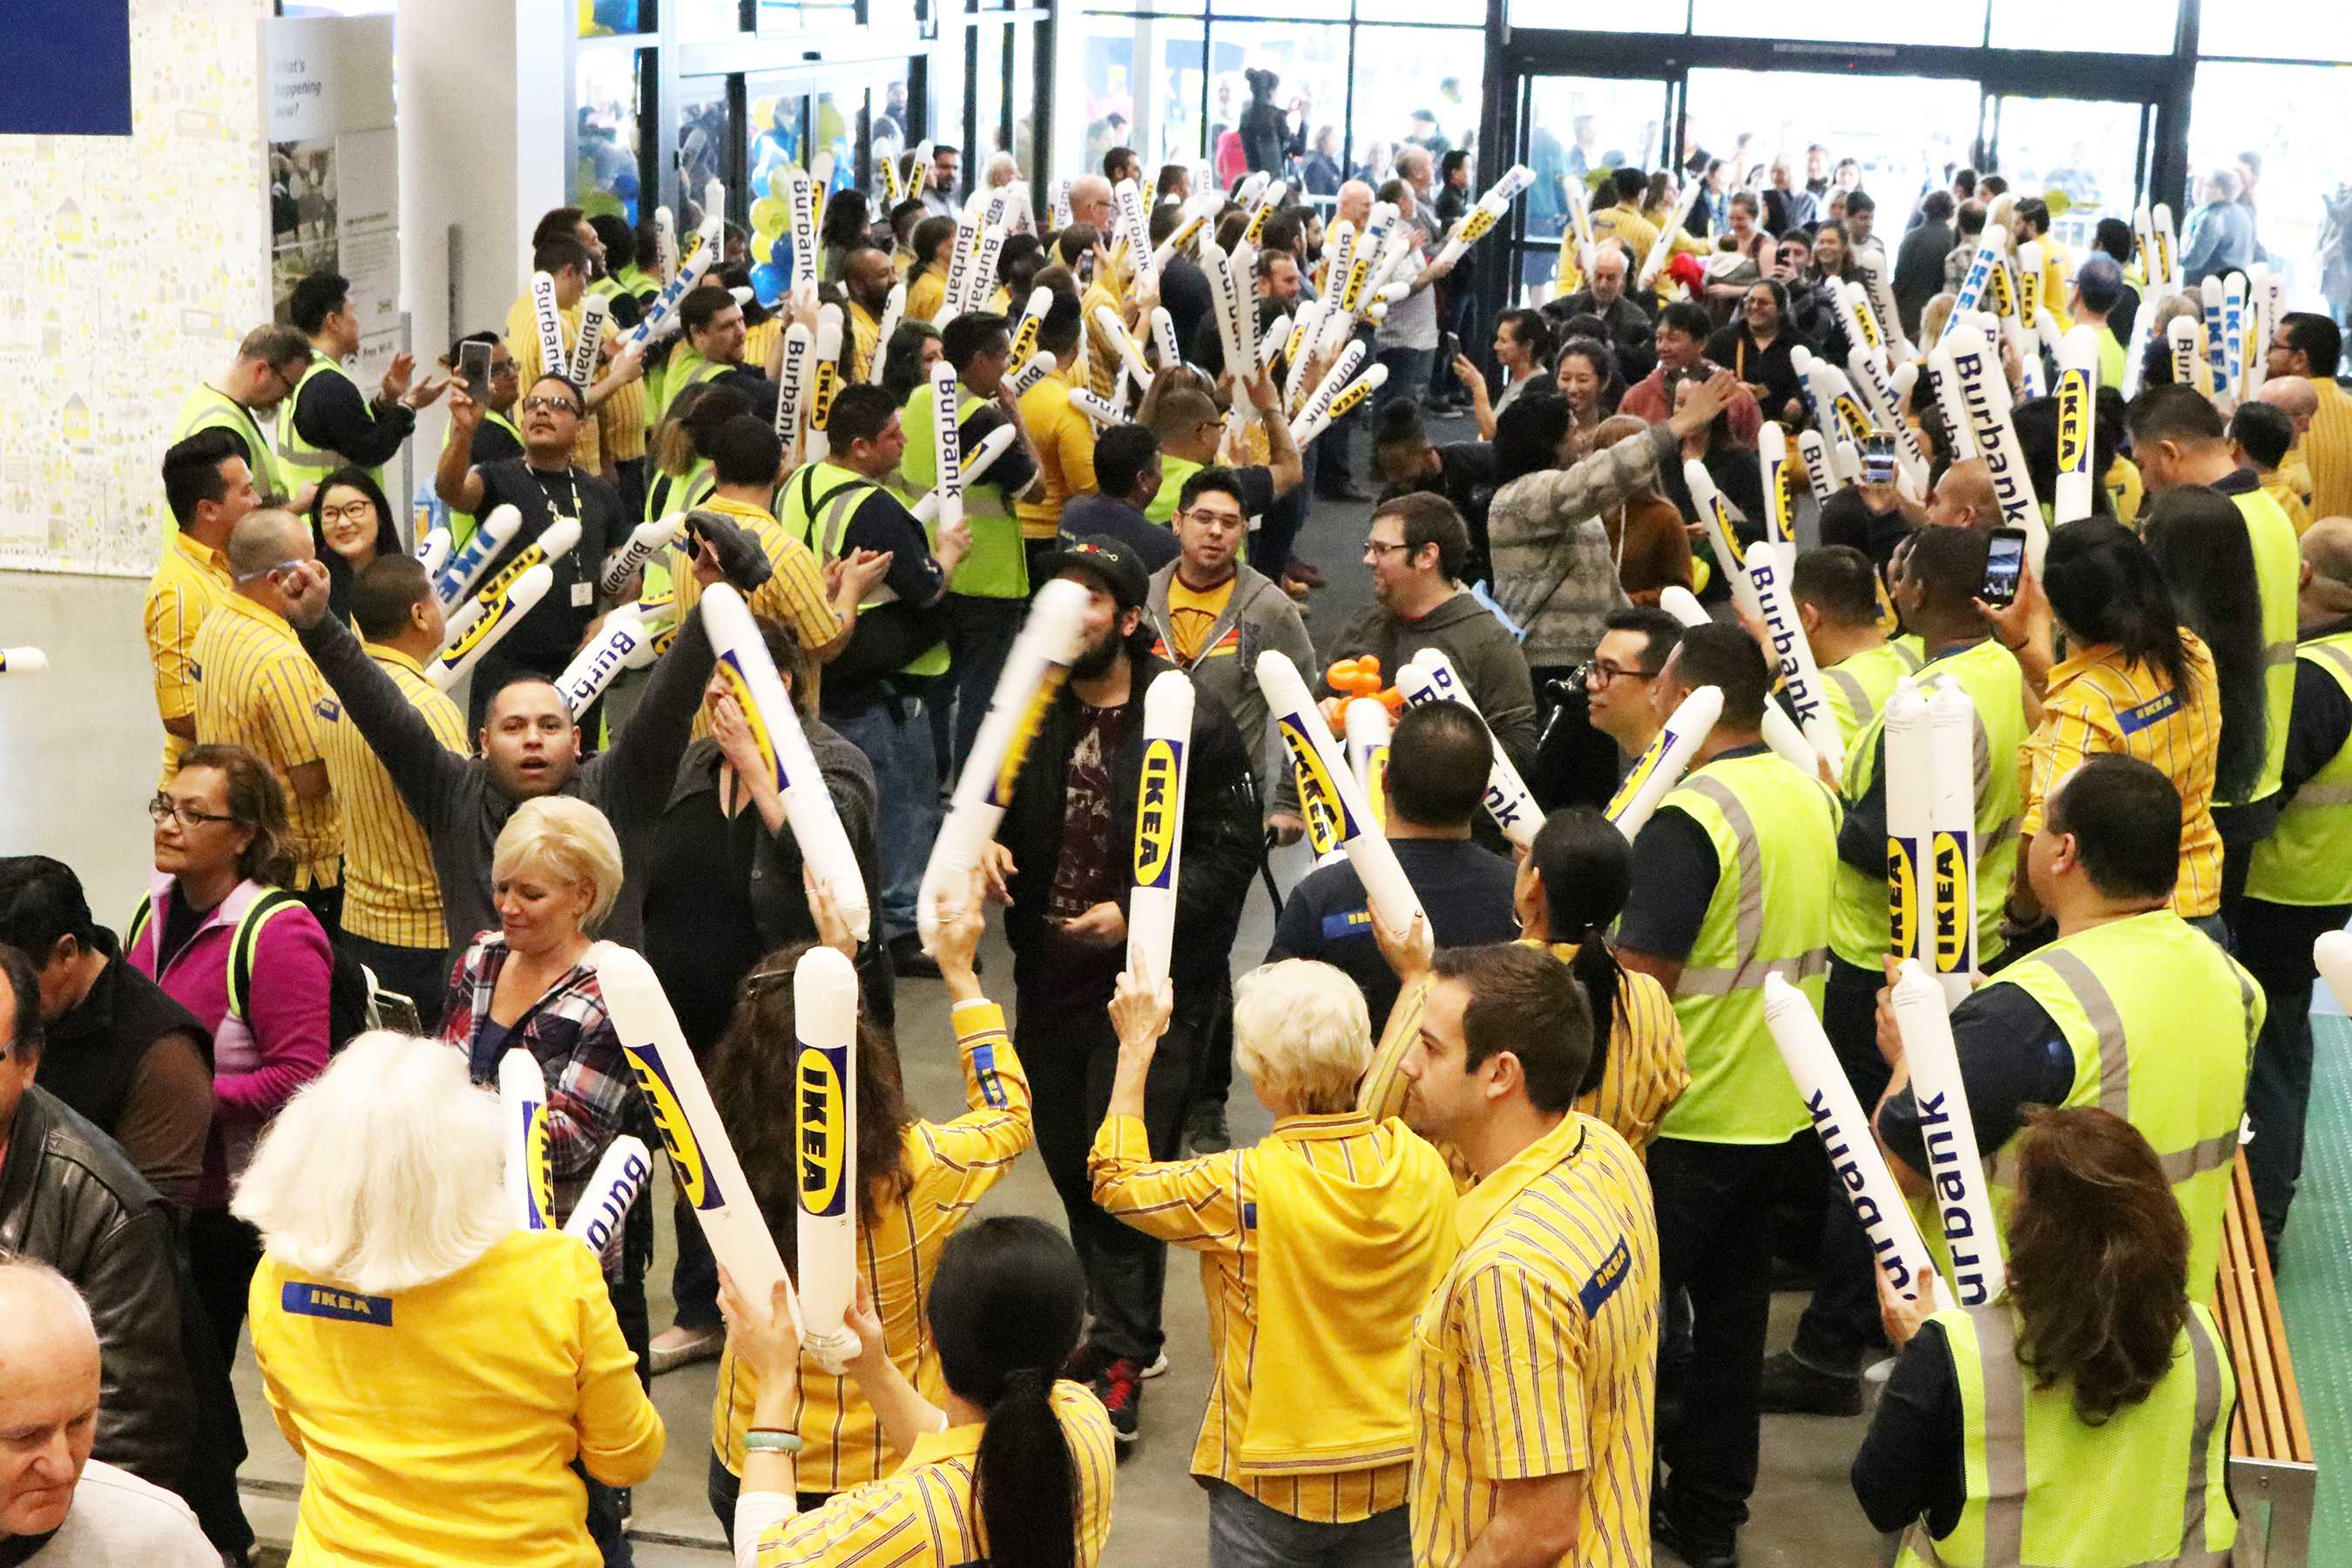 People enter the biggest IKEA store in the United States in Burbank for its grand opening on Wednesday, Feb. 8, 2017. Nikolas Samuels/The Sundial